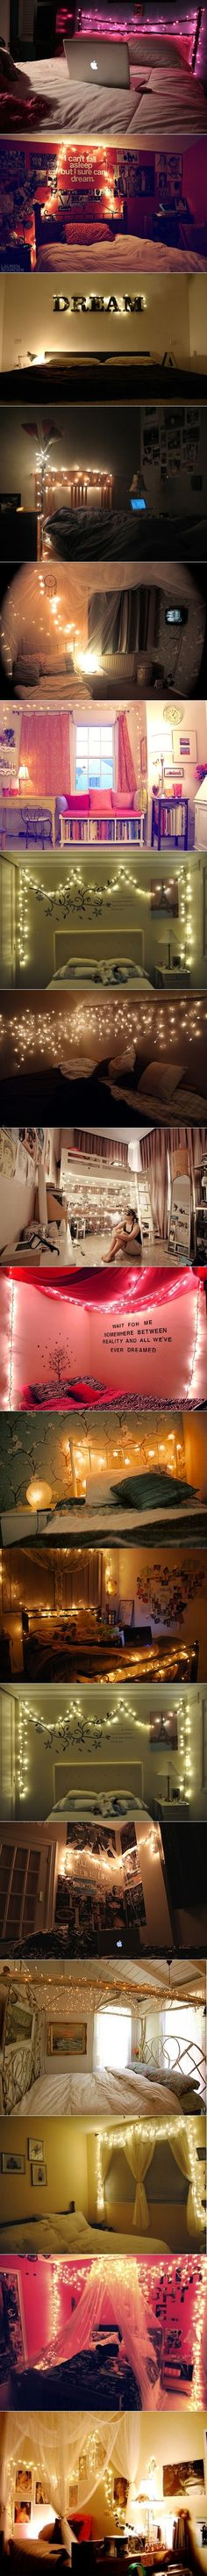 great ideas for making bedrooms personal, for teens/young adults, Christmas lights, favorite sayings on walls, photos, etc  -- by parnellemily